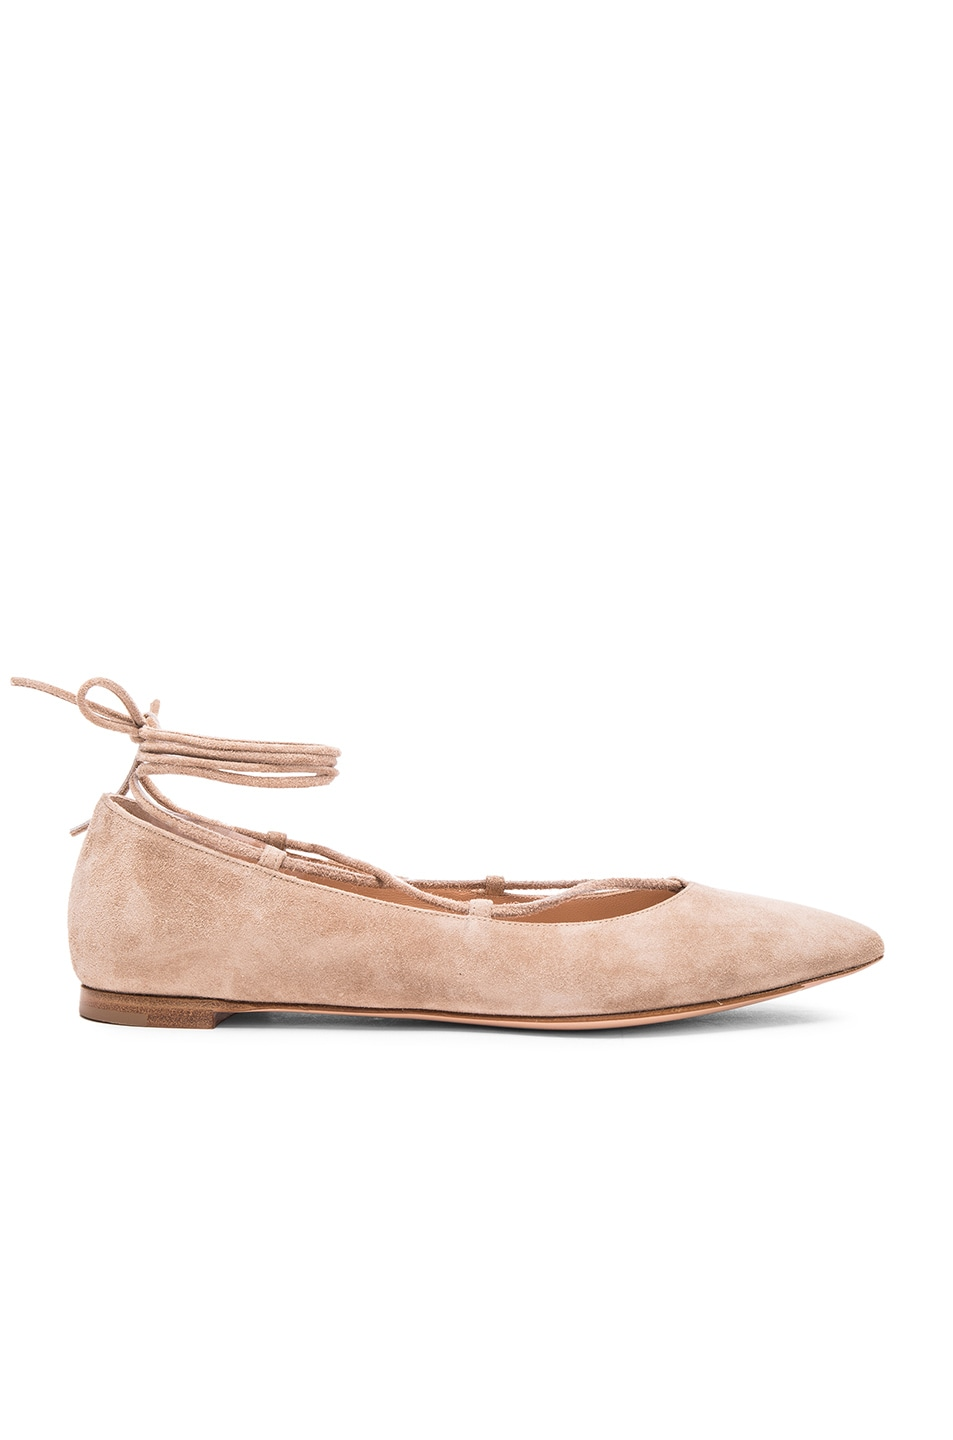 Image 1 of Gianvito Rossi Suede Femi Flats in Bisque